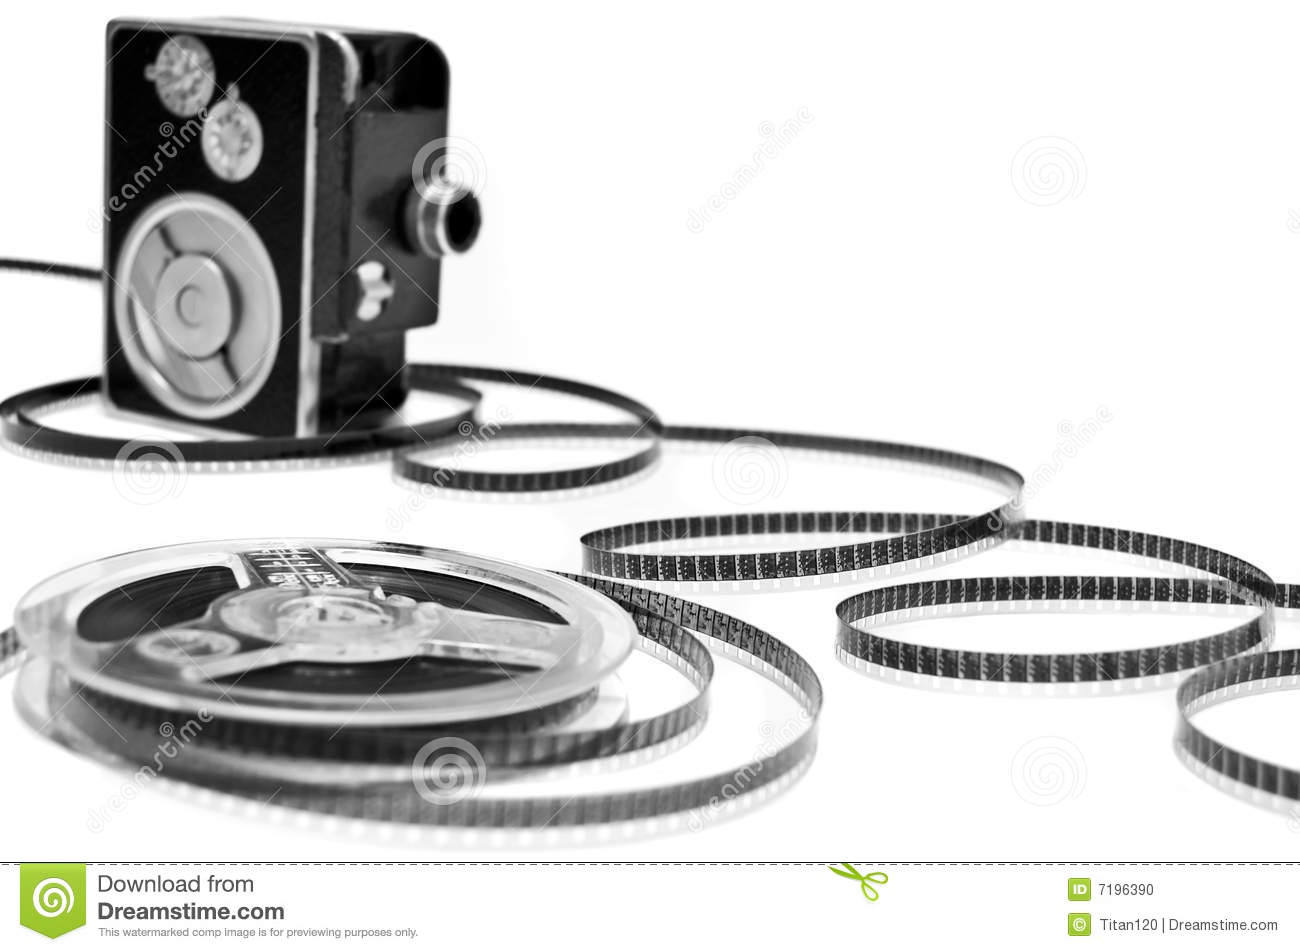 Home movie camera and film reel isolated on white